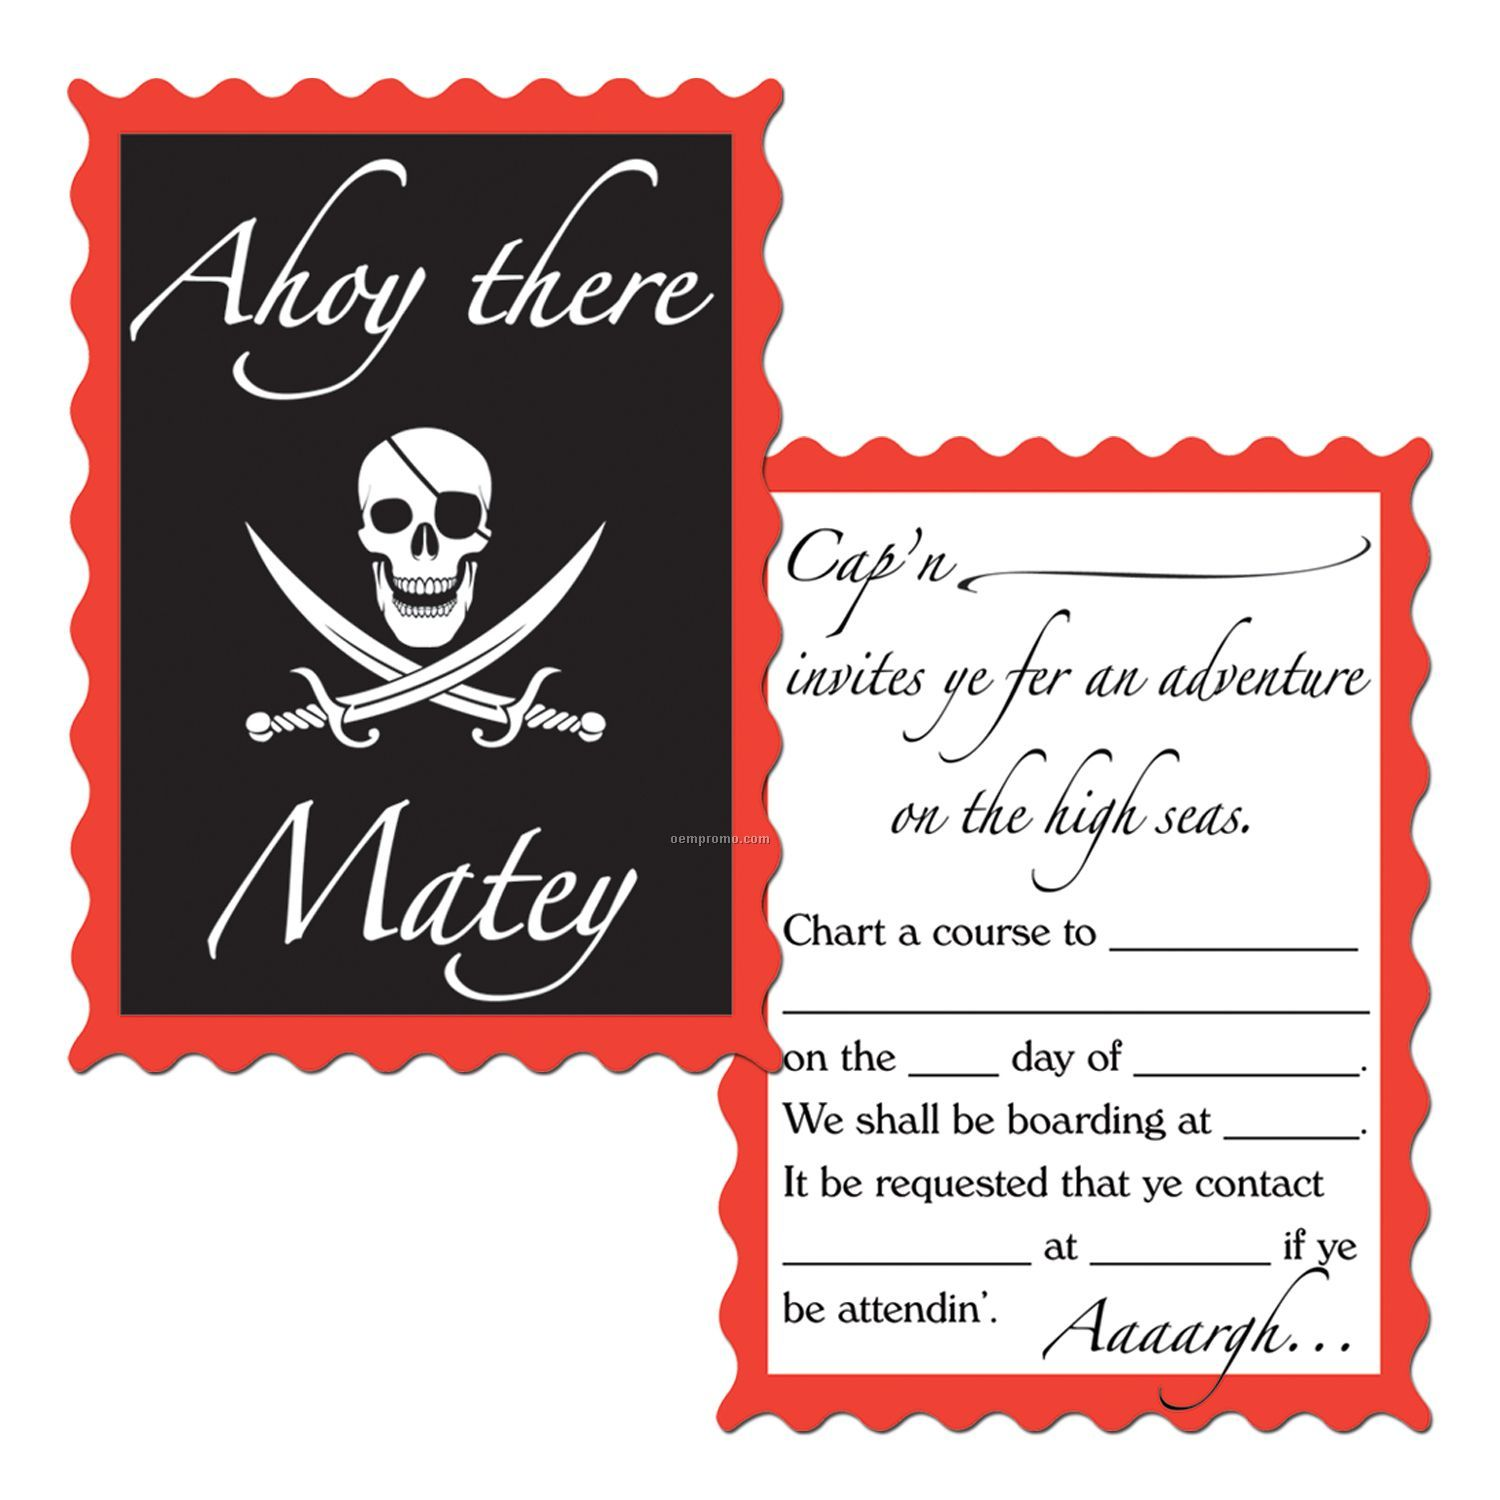 Pirate Party InvitationsChina Wholesale Pirate Party Invitations – Pirate Party Invites